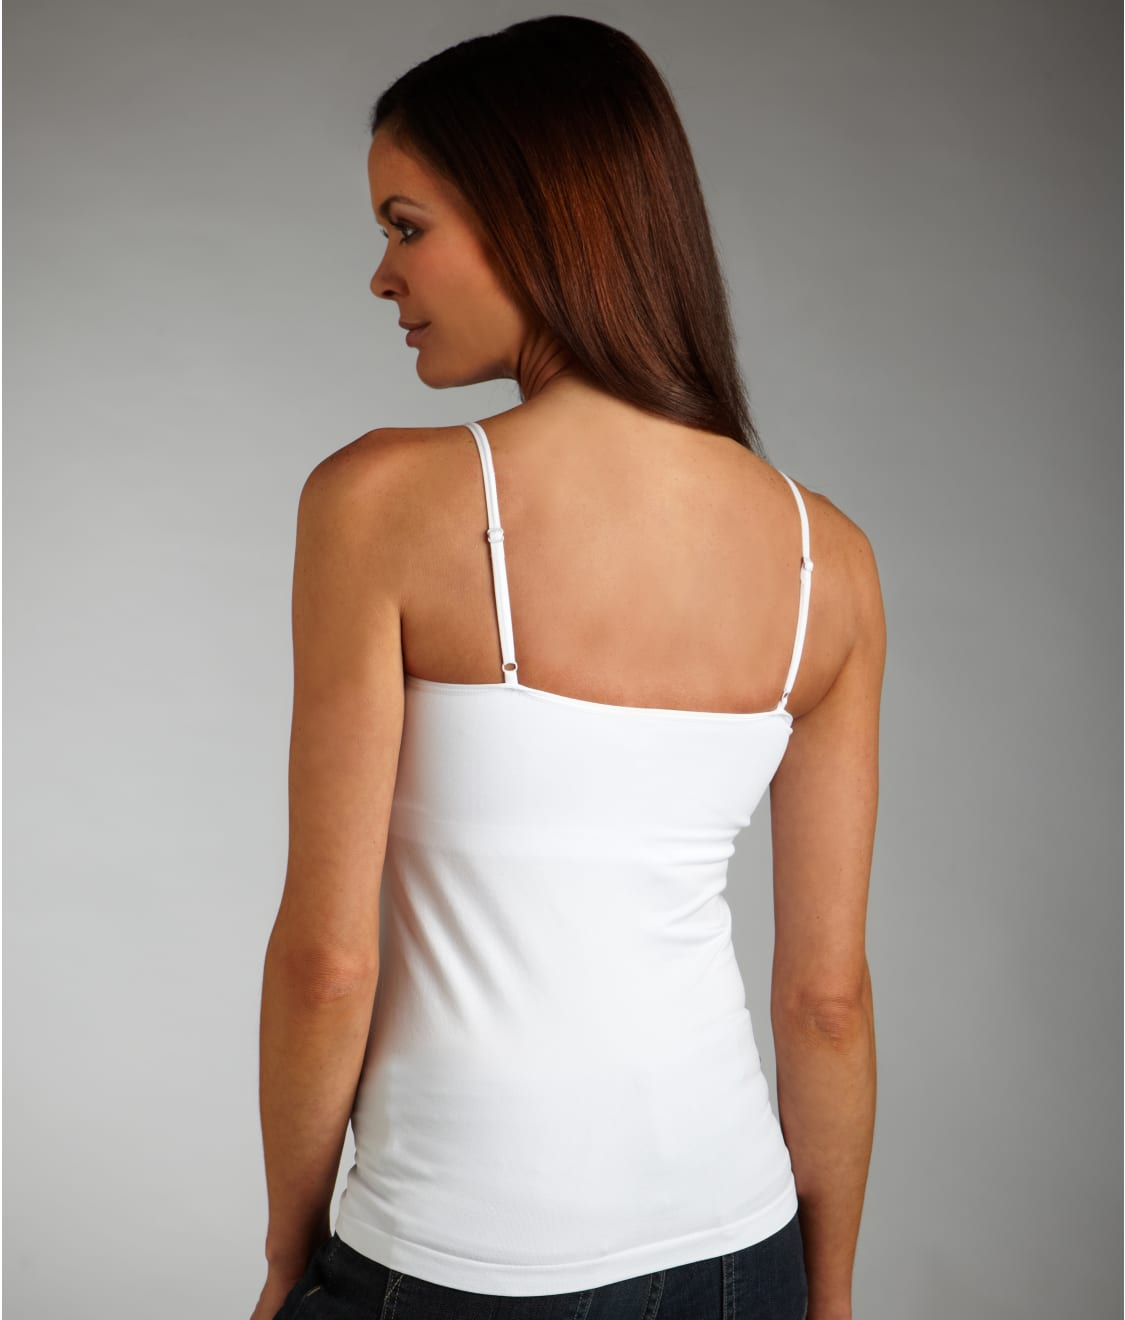 Coobie Camisole with Built-in Shelf Bra Daywear 1237 at ...